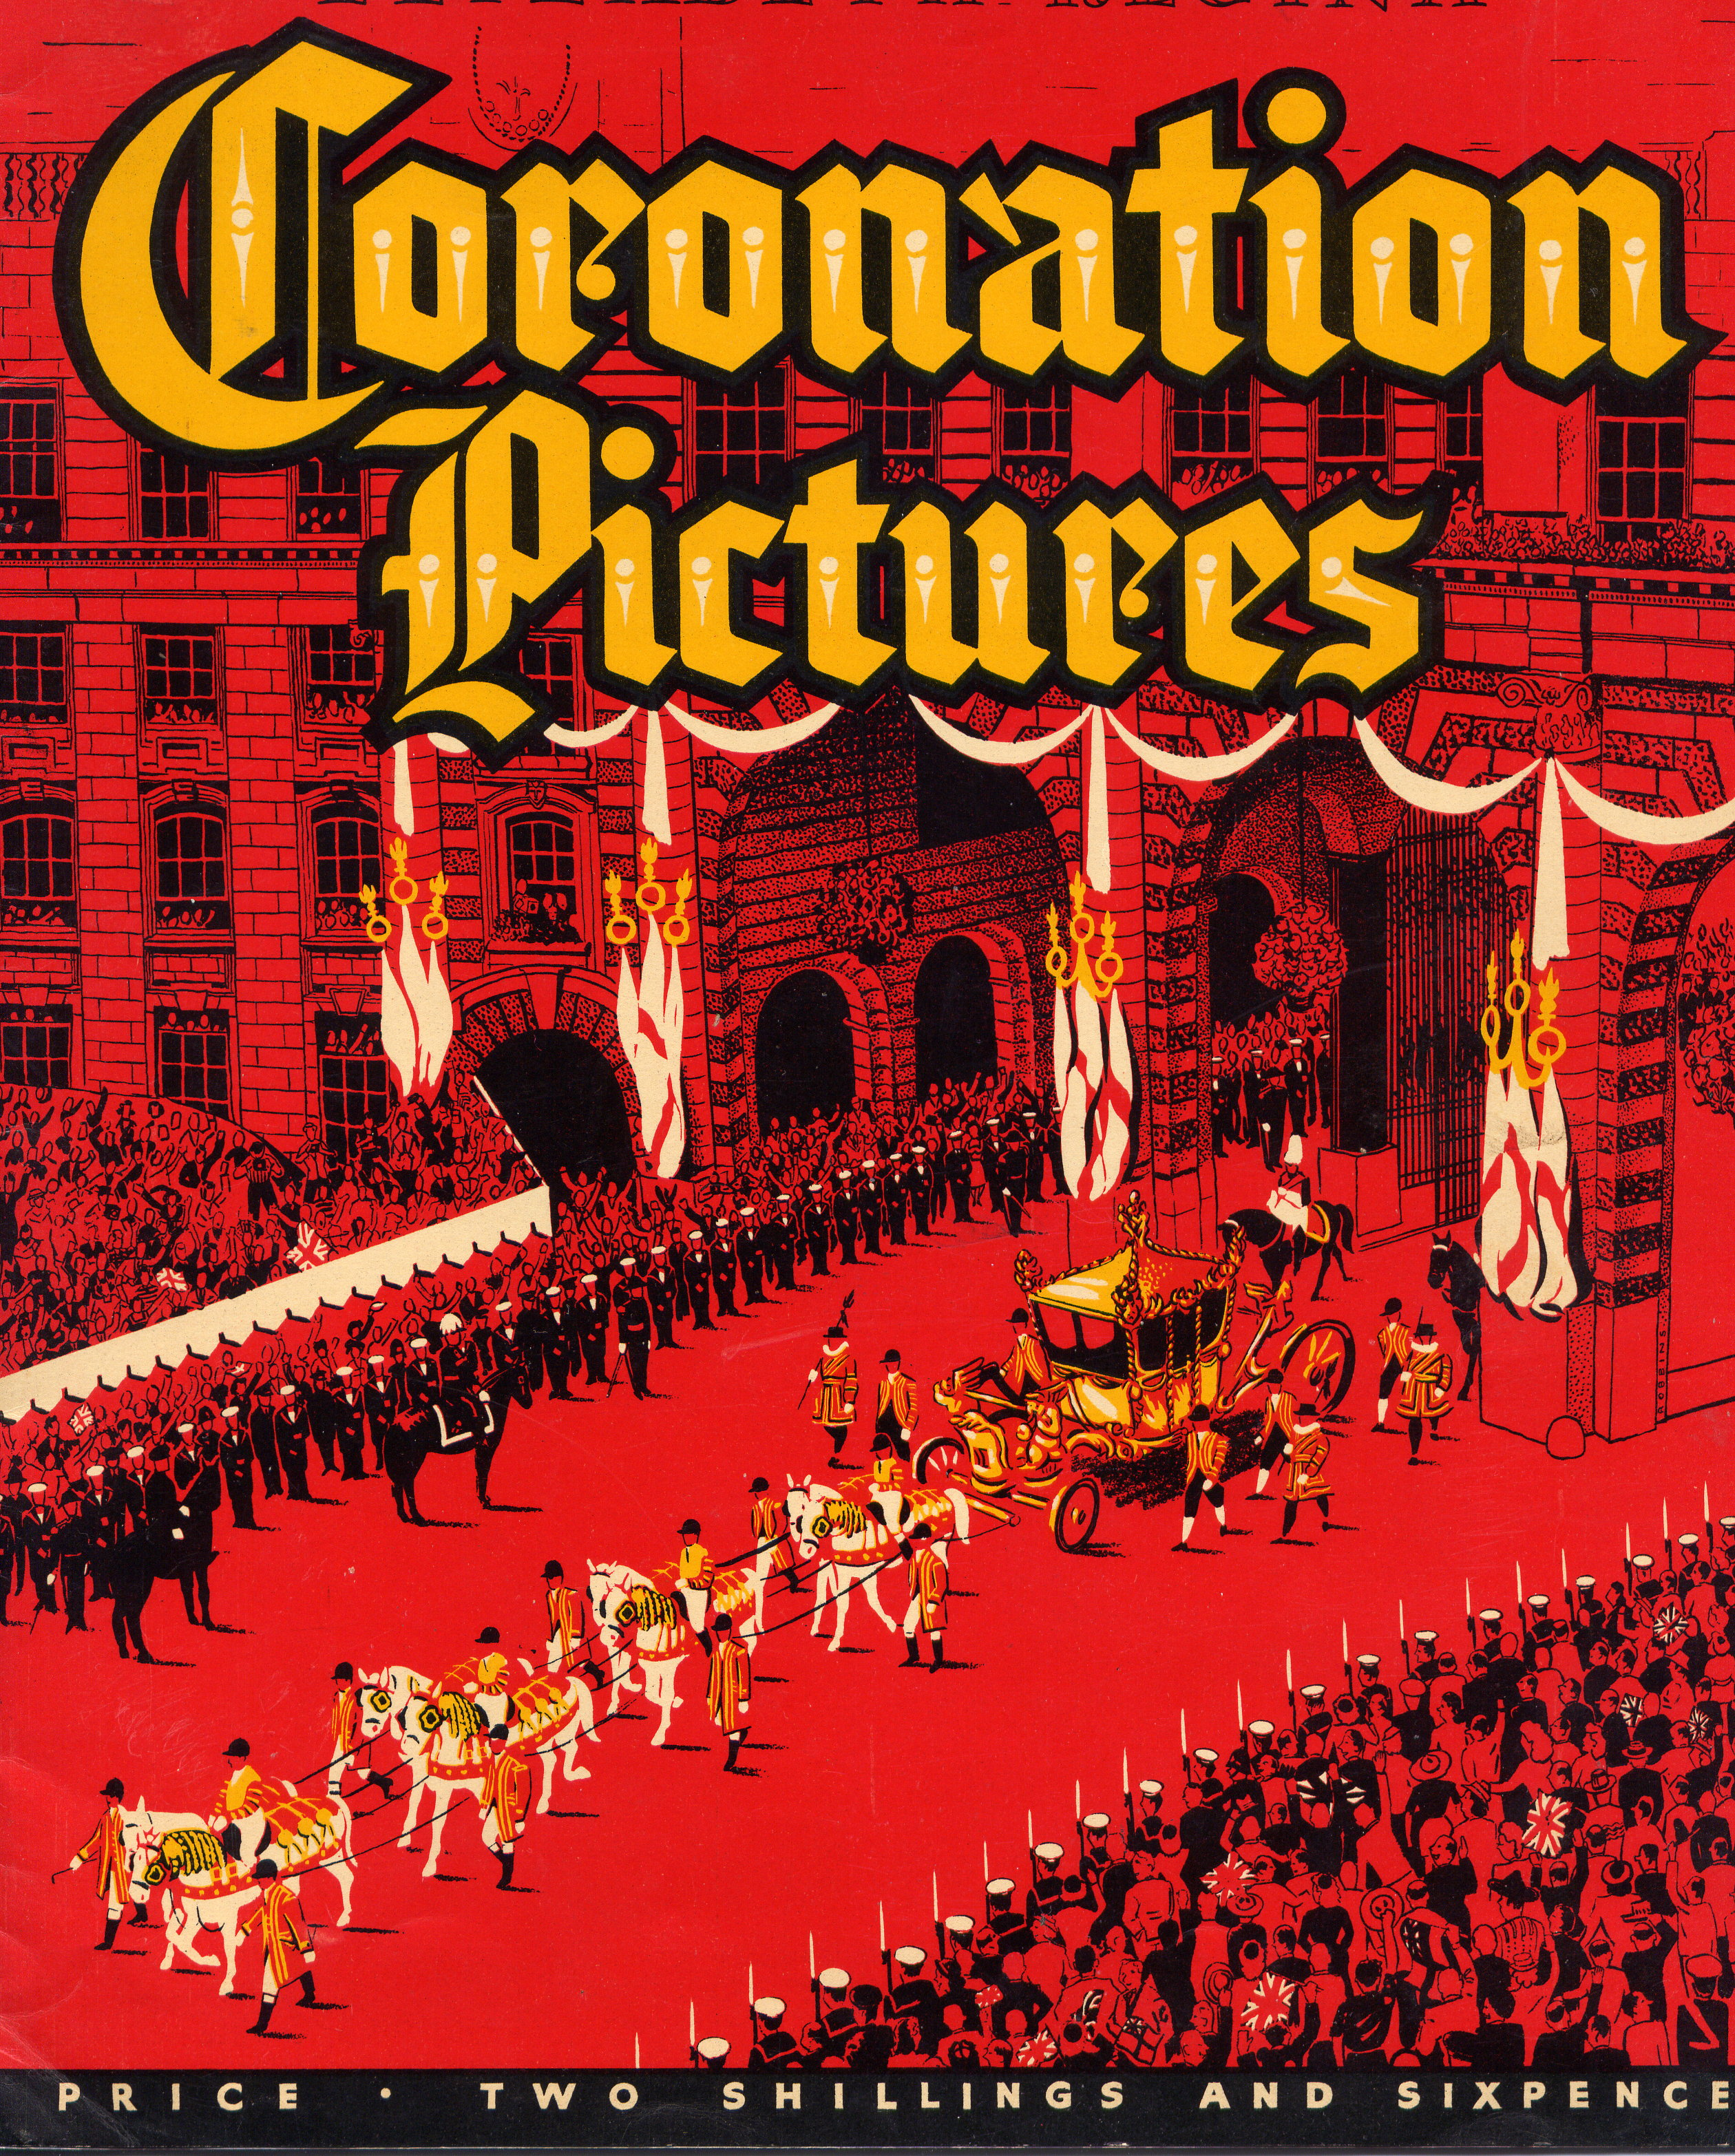 20_ER_Coronation_Pictures_Front-Cover